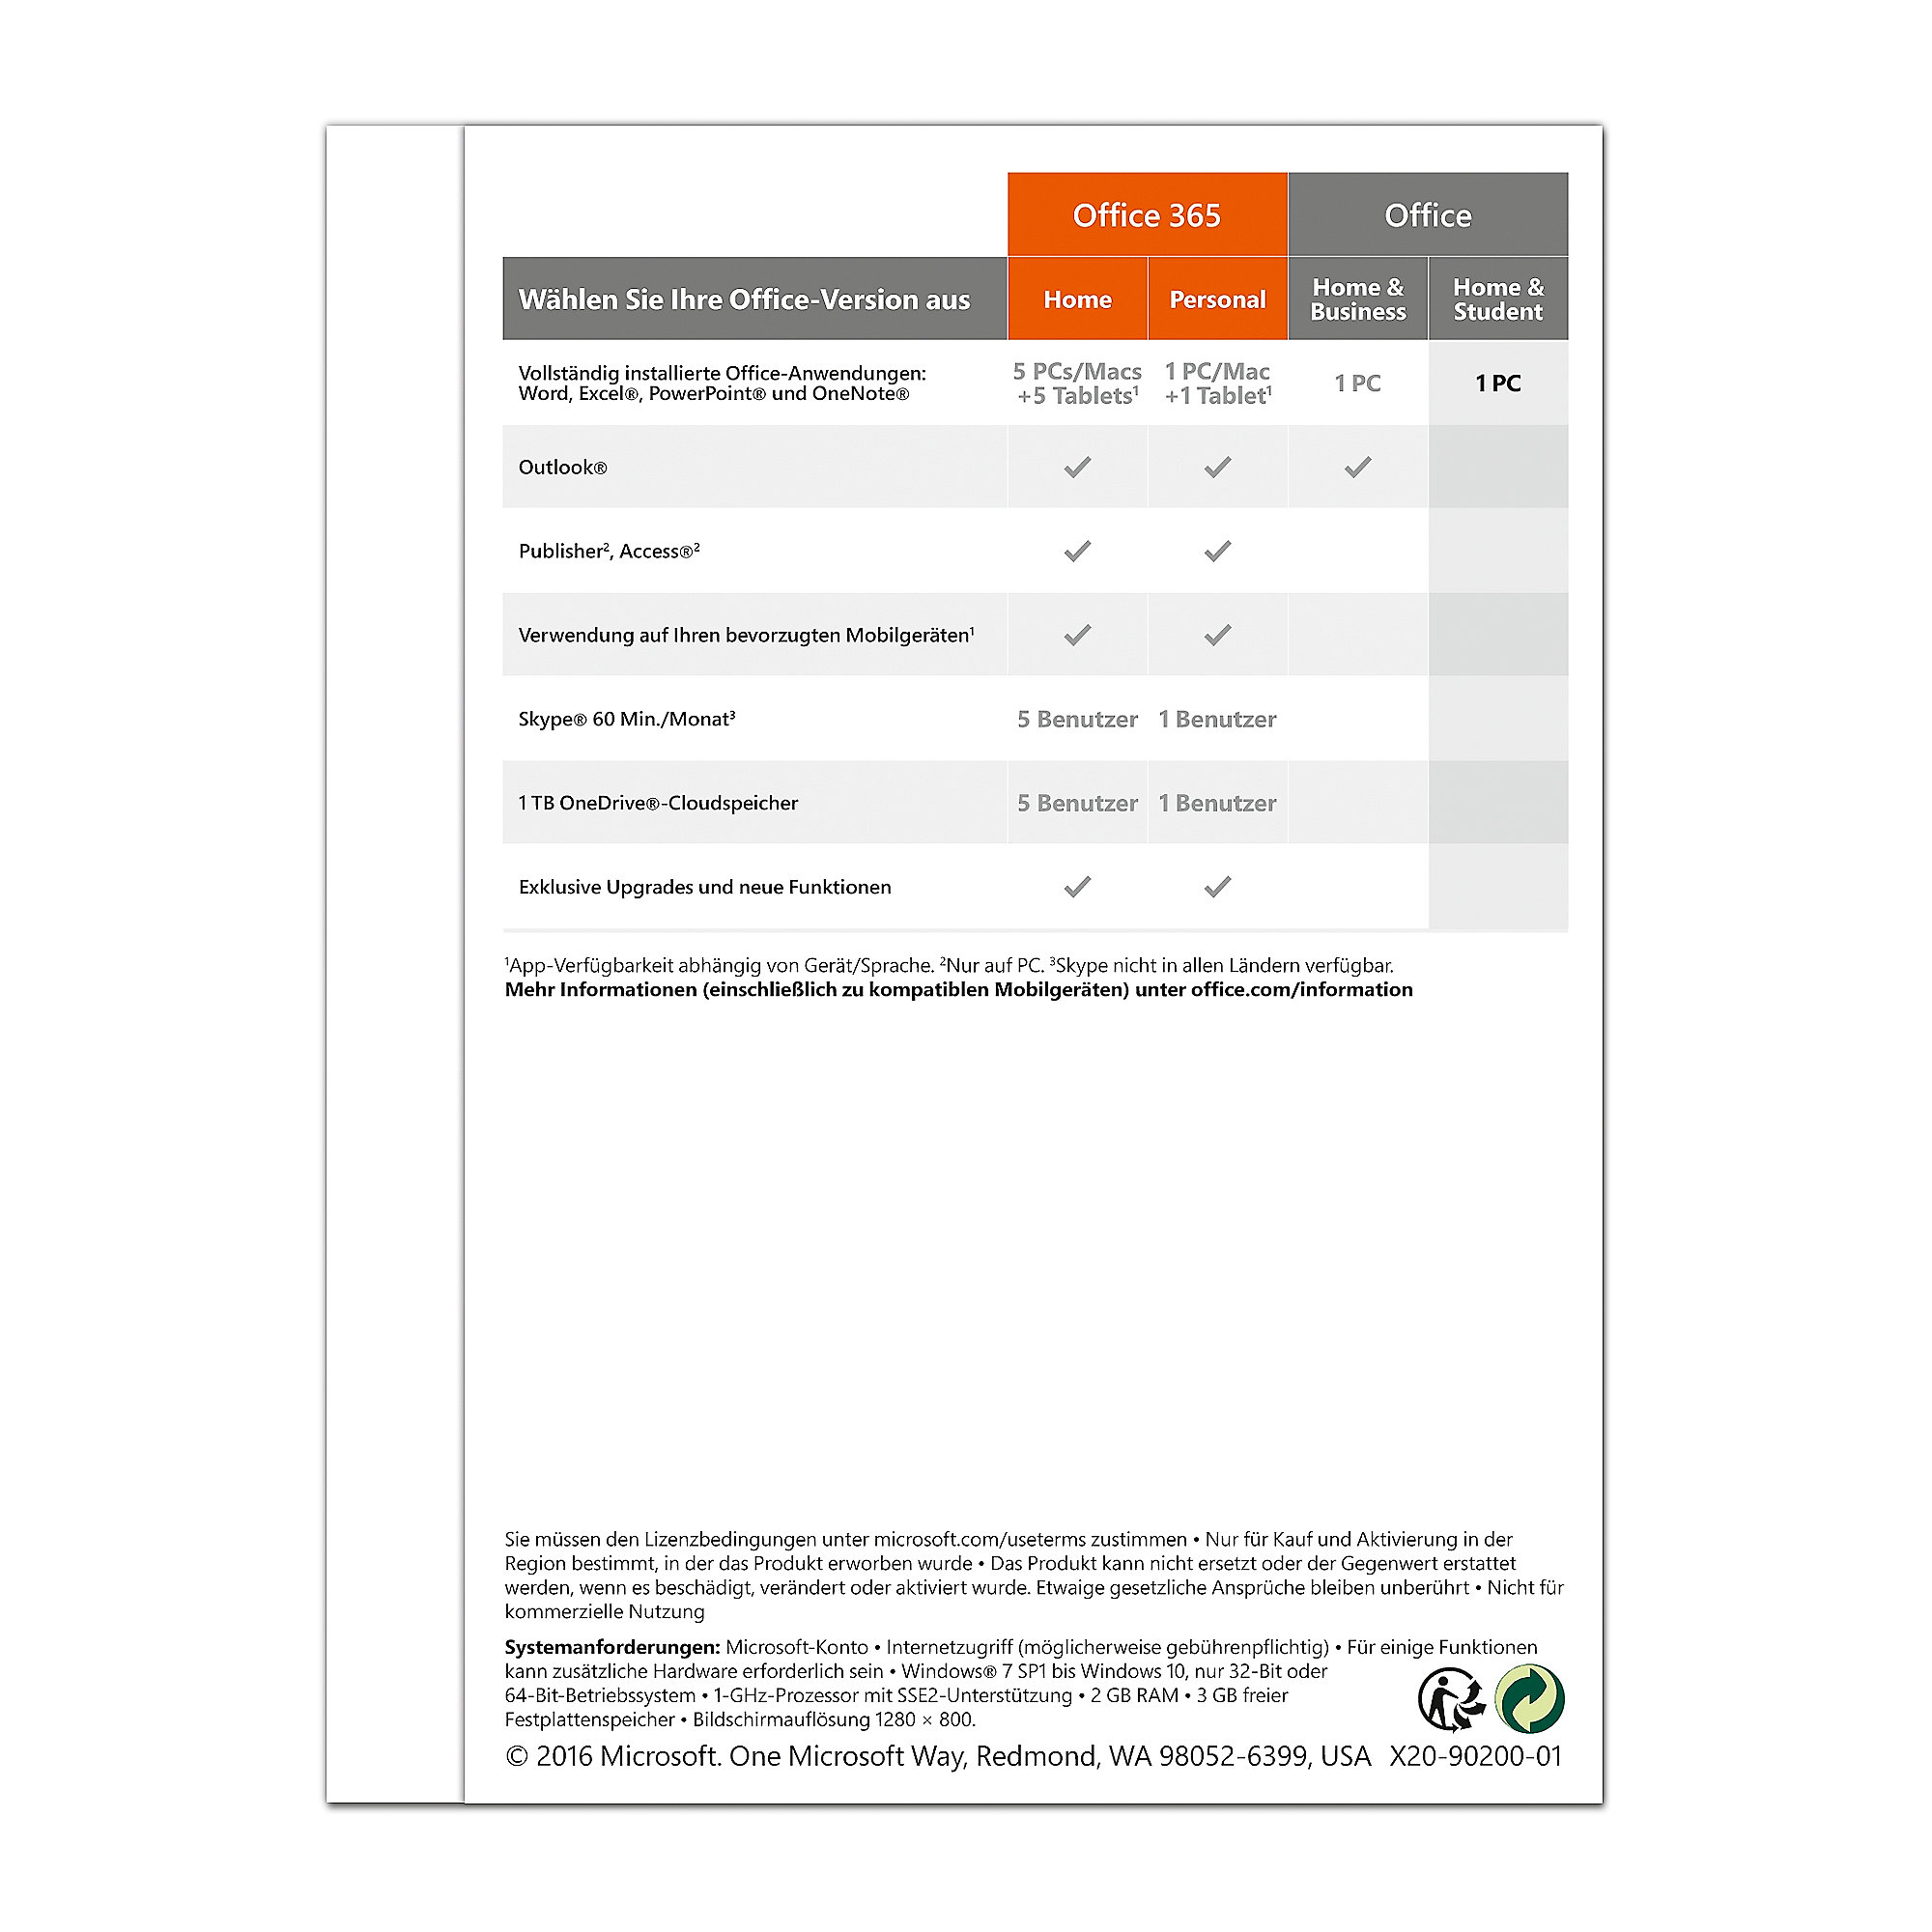 Microsoft Office Home & Student 2016, 1PC PKC (P2)